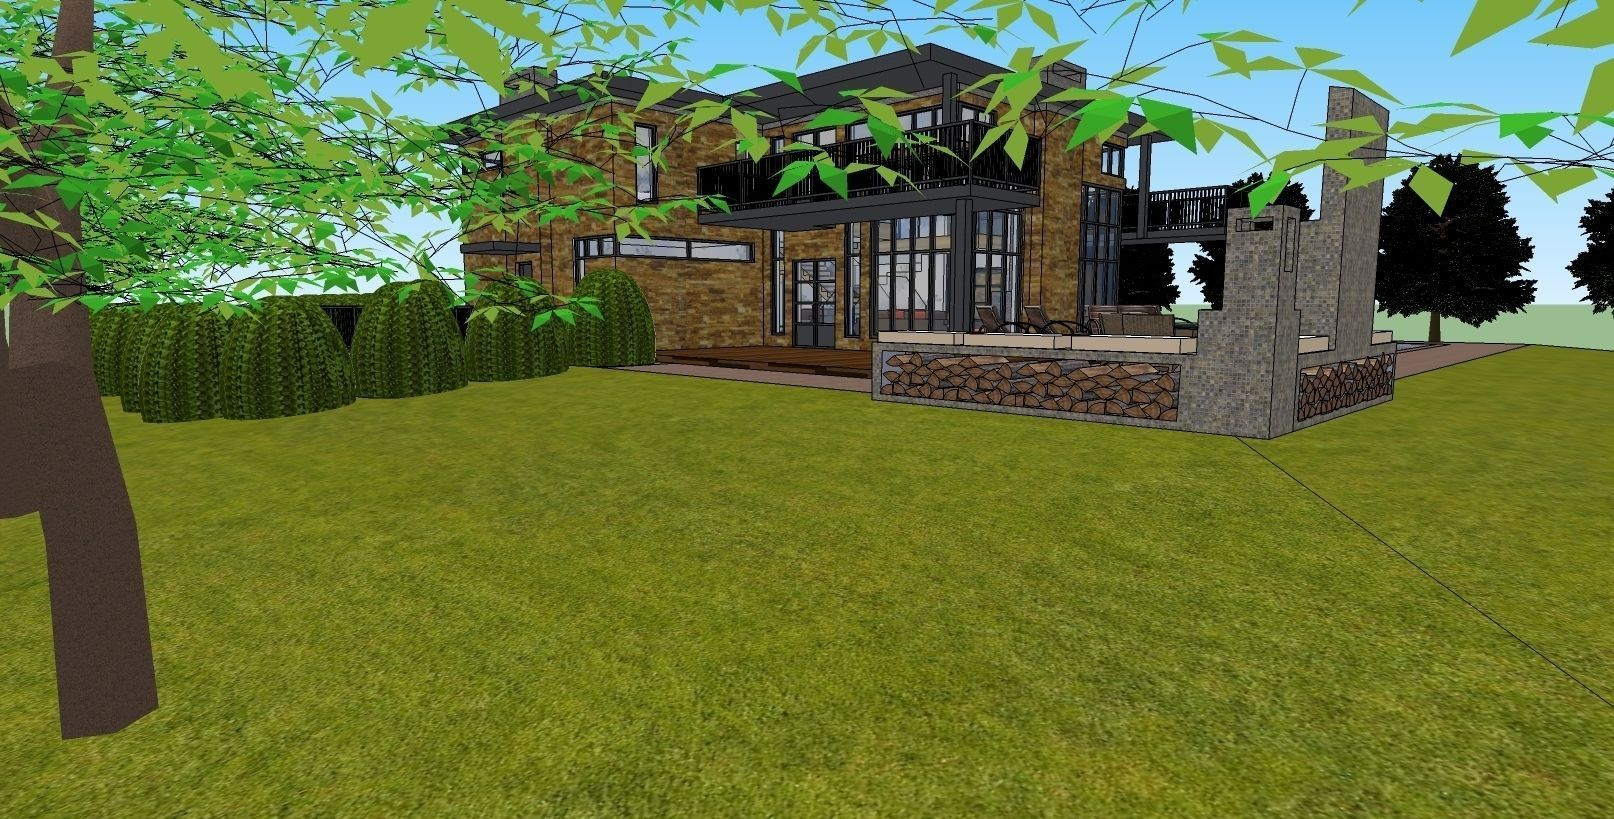 Dream House Free 3d Model Dwg Skp